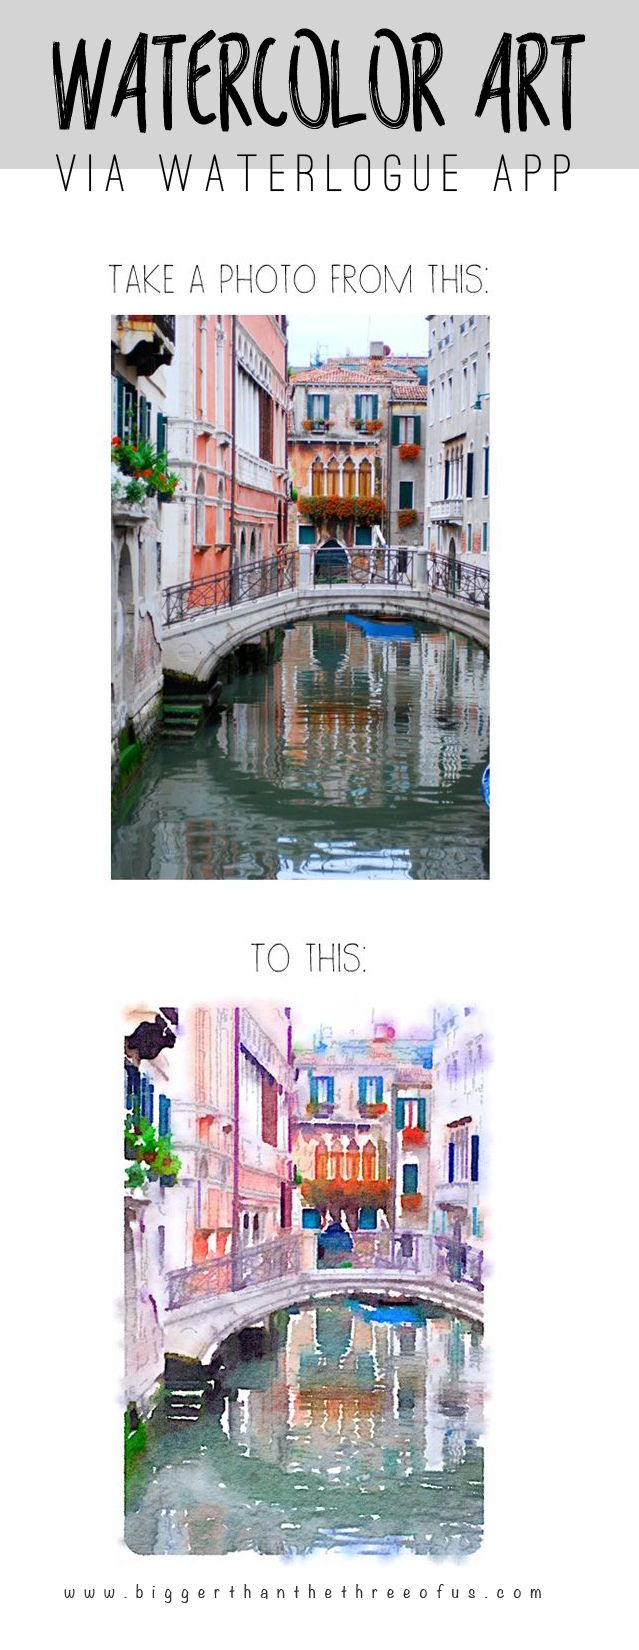 Watercolor Travel Art : This this unique app to transform travel pictures into awesome art pieces that just wow.